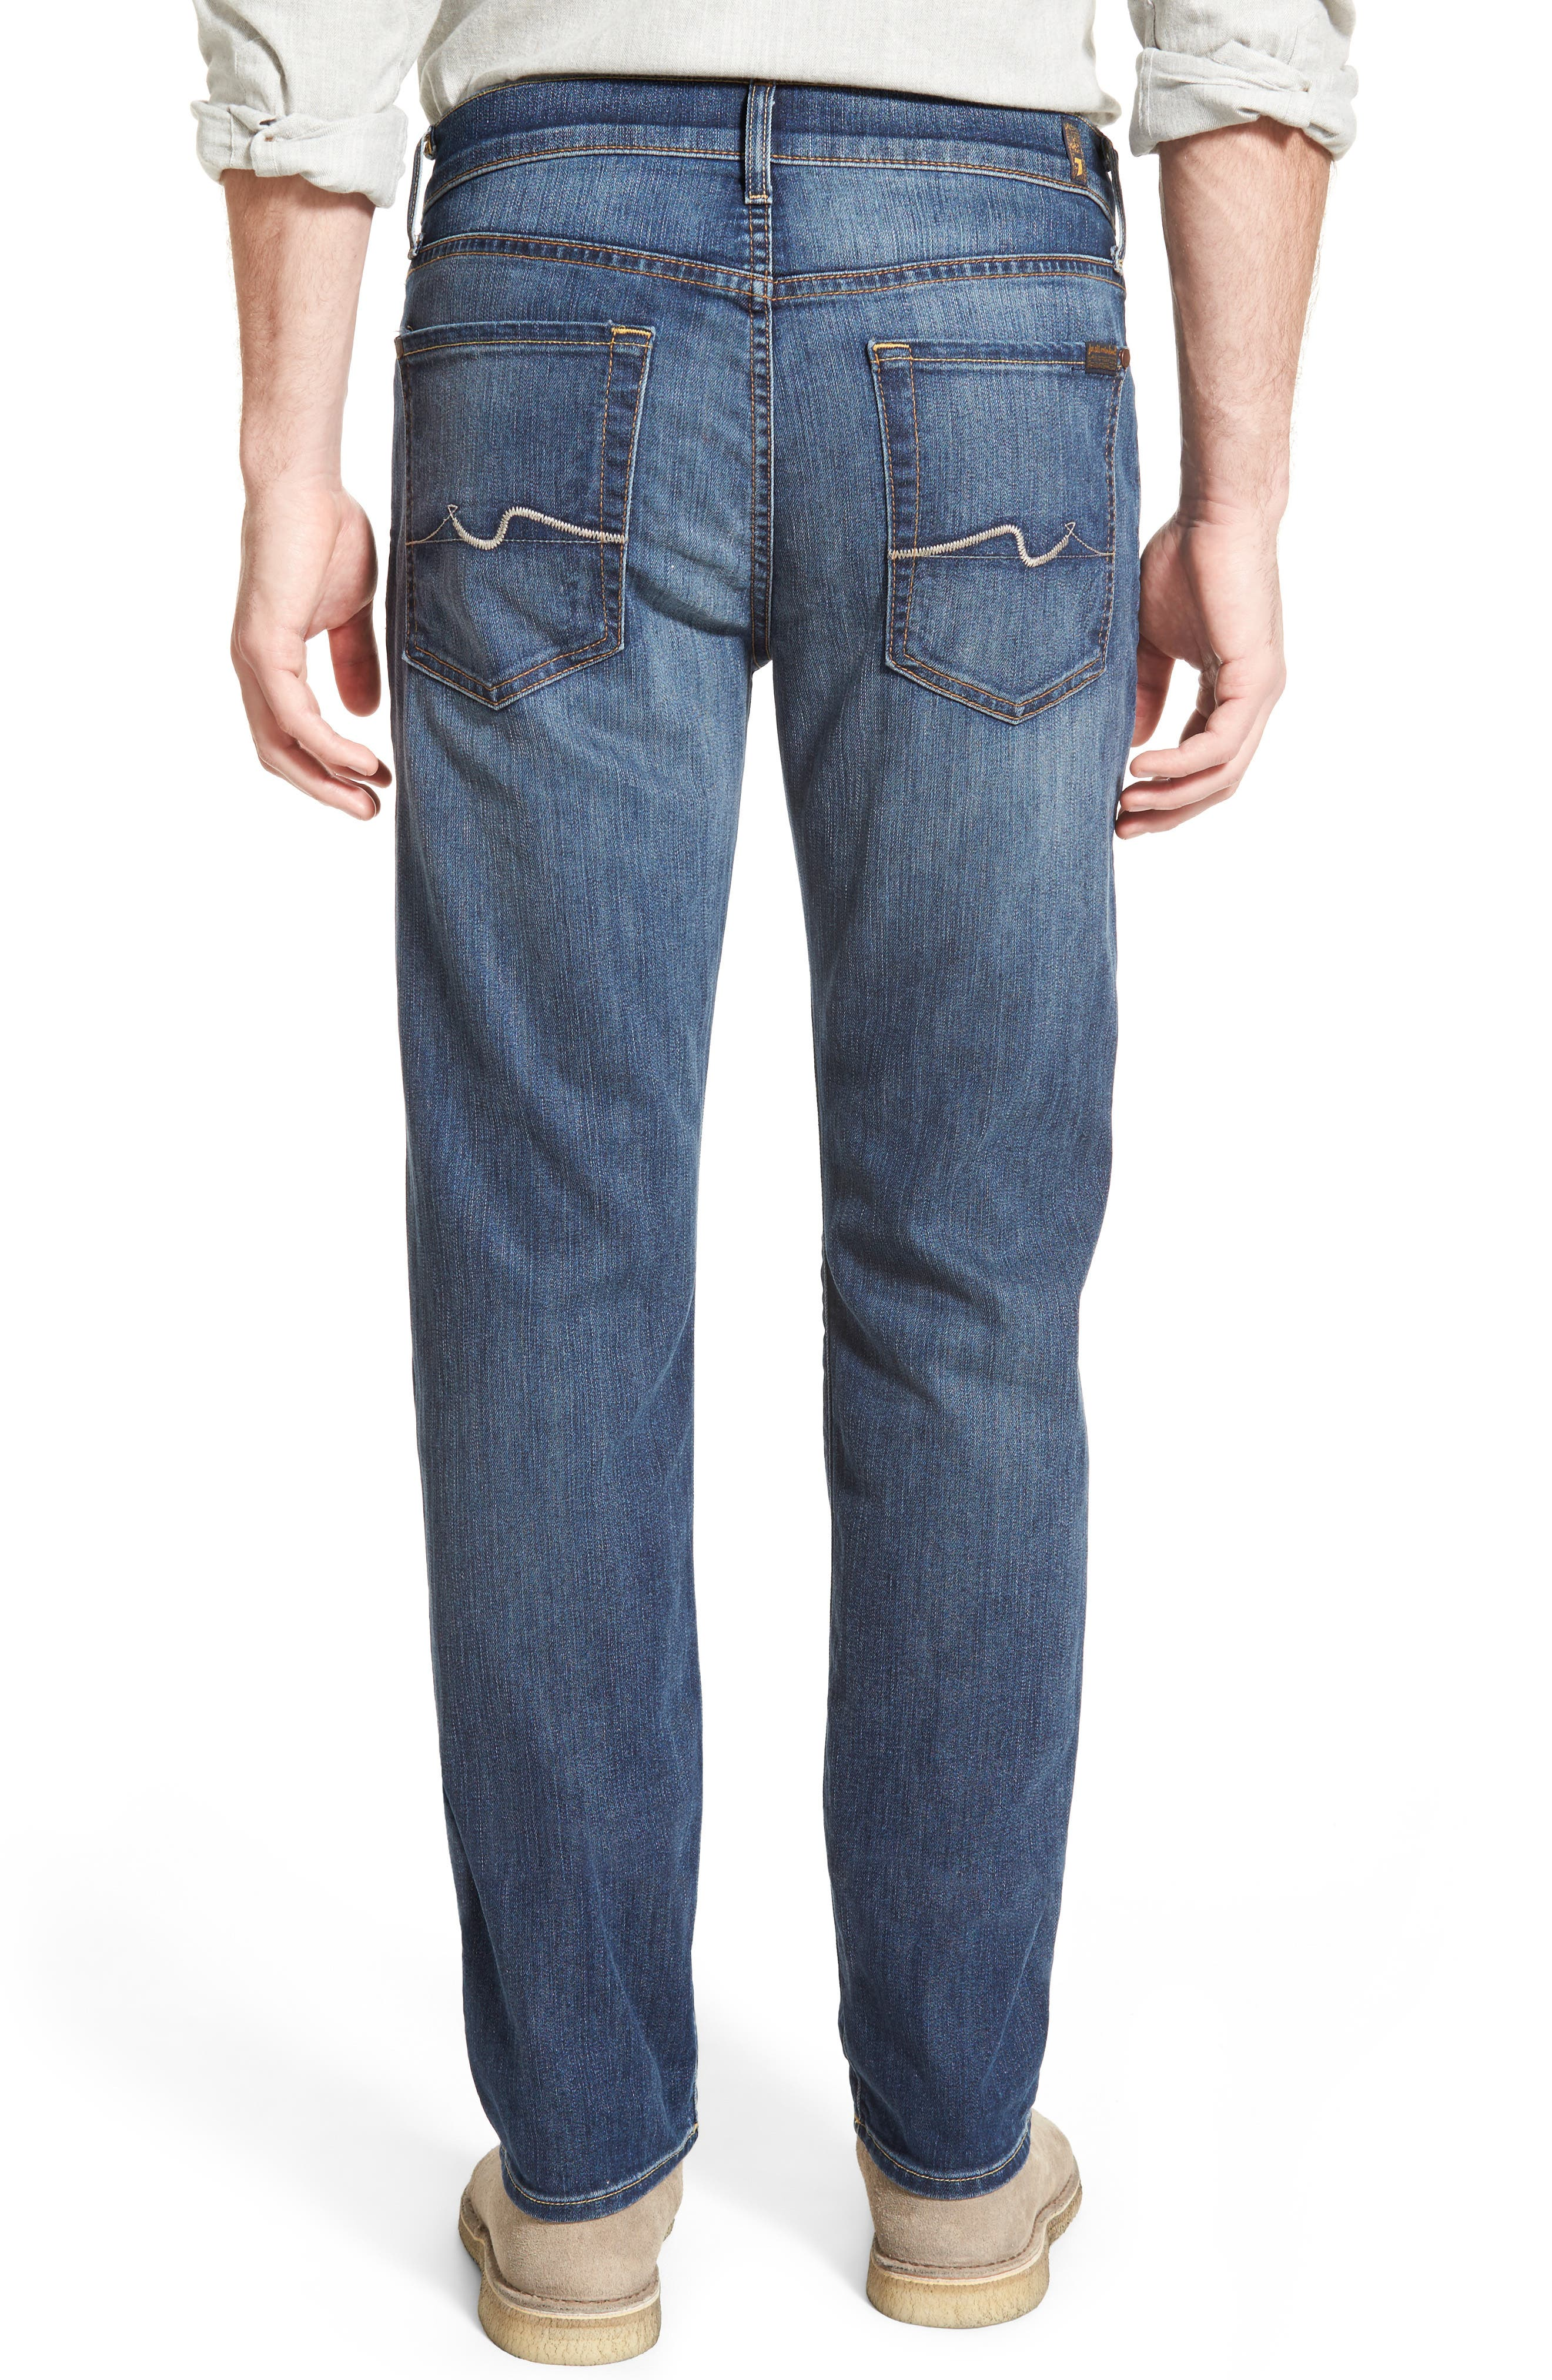 'Slimmy - Luxe Performance' Slim Fit Jeans,                             Alternate thumbnail 2, color,                             AIR WEFT COMMOTION